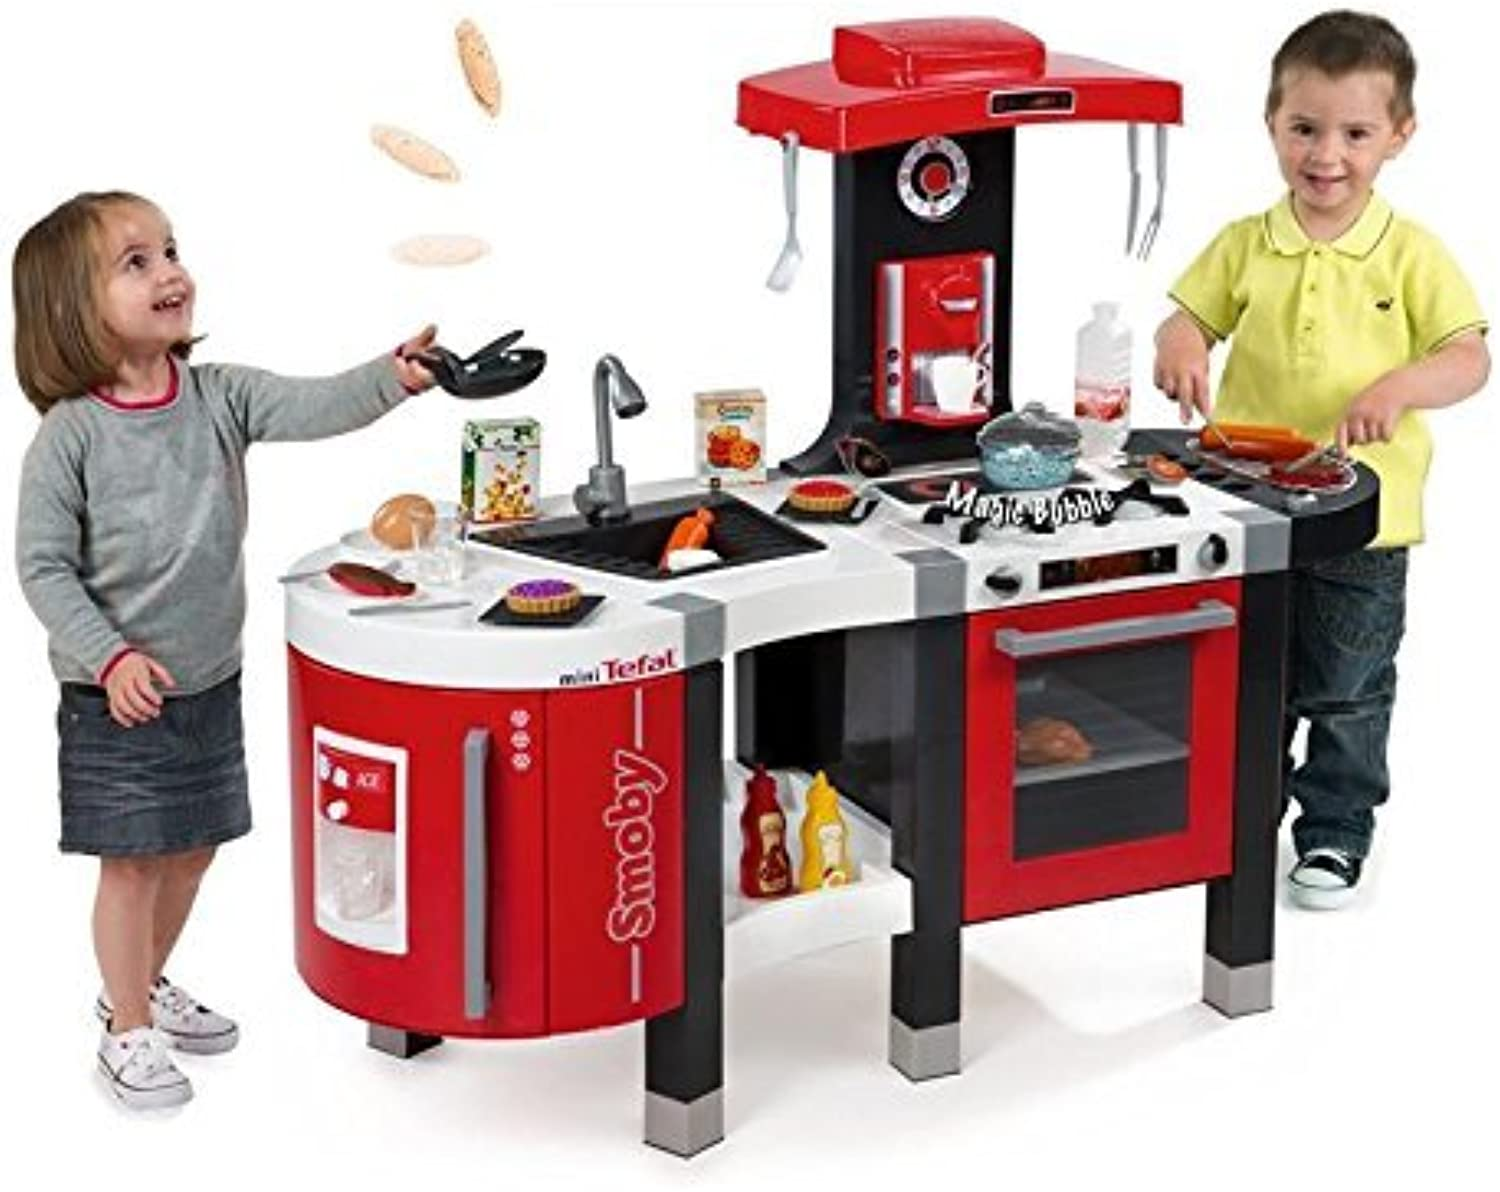 Smoby 311201 Tefal - French Touch Kitchen 'Bubble' by Smoby